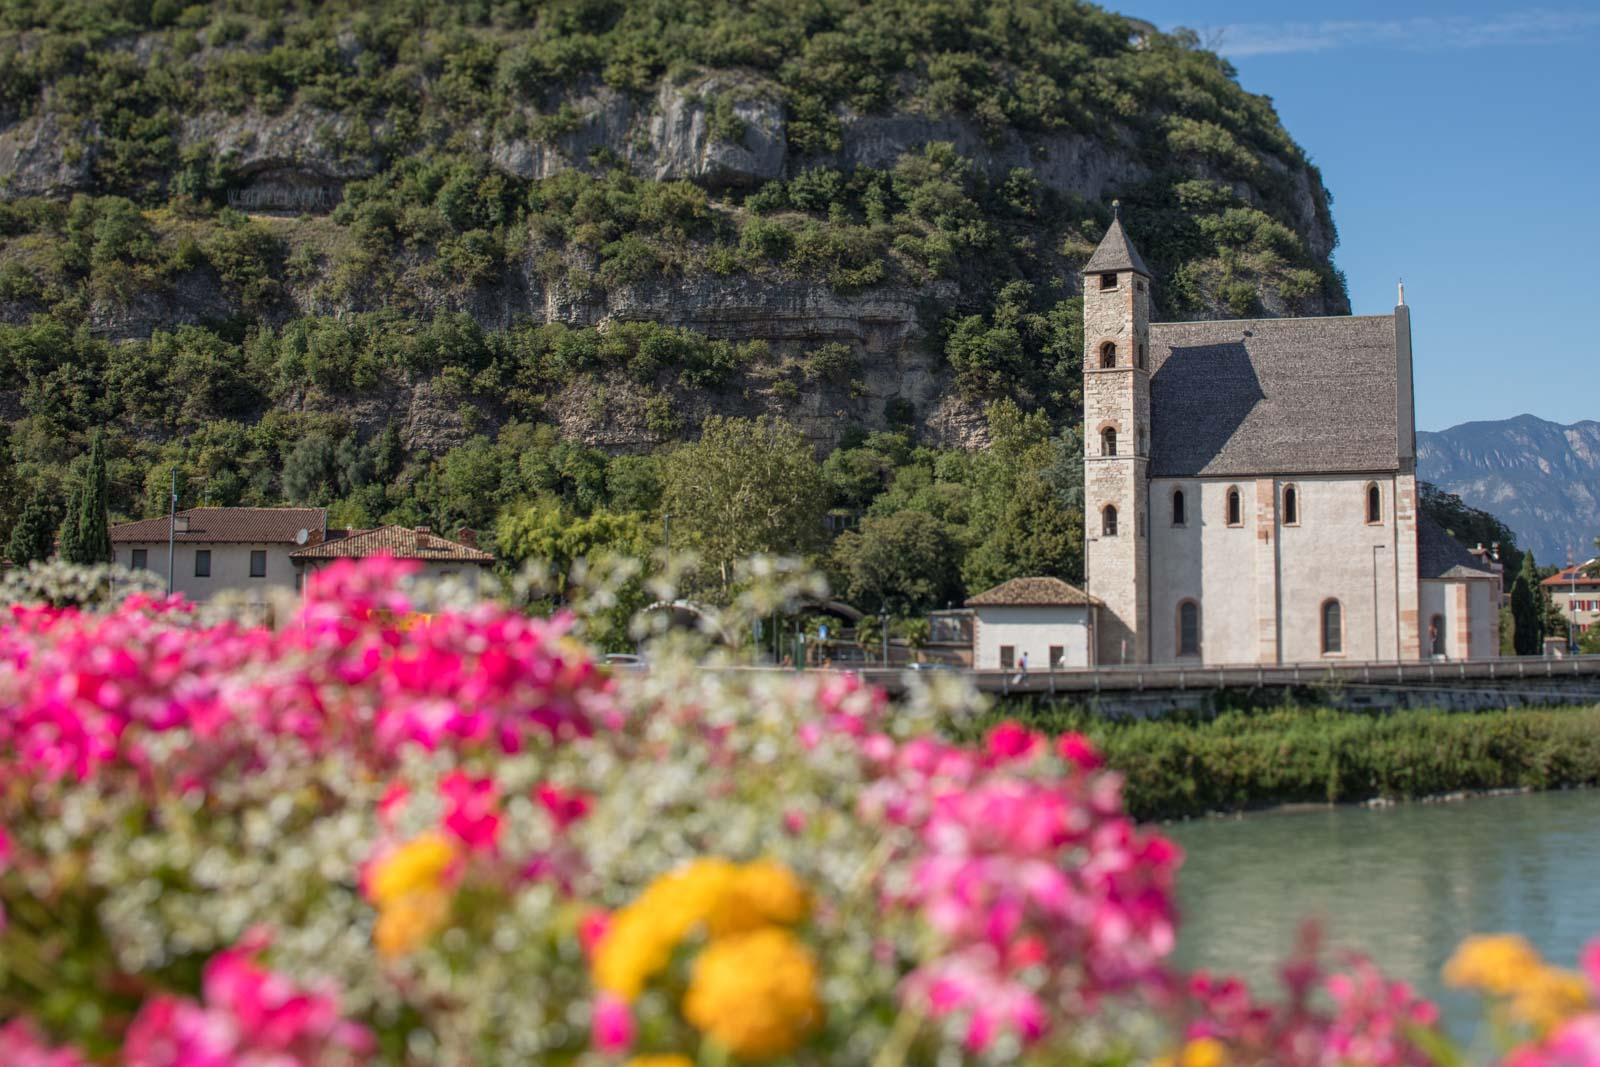 Chiesa di Sant'Apollinare along the Adige River in Trento, Italy ... one of many pleasant sights. ©Kevin Day/Opening a Bottle